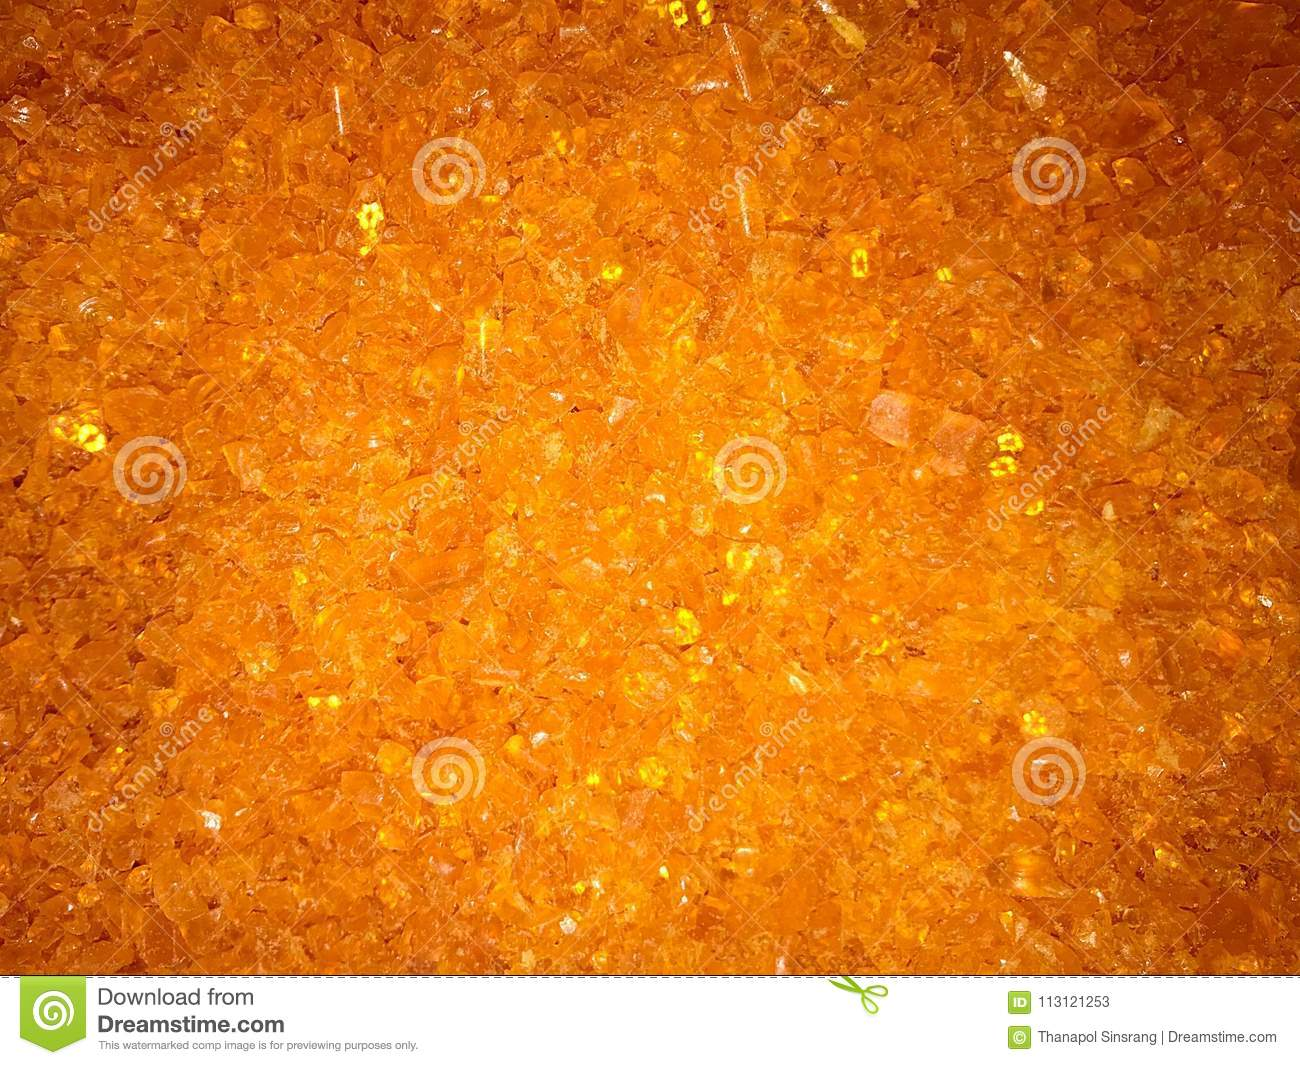 Polyethylene Resin, Plastic Scrap Stock Image - Image of destination